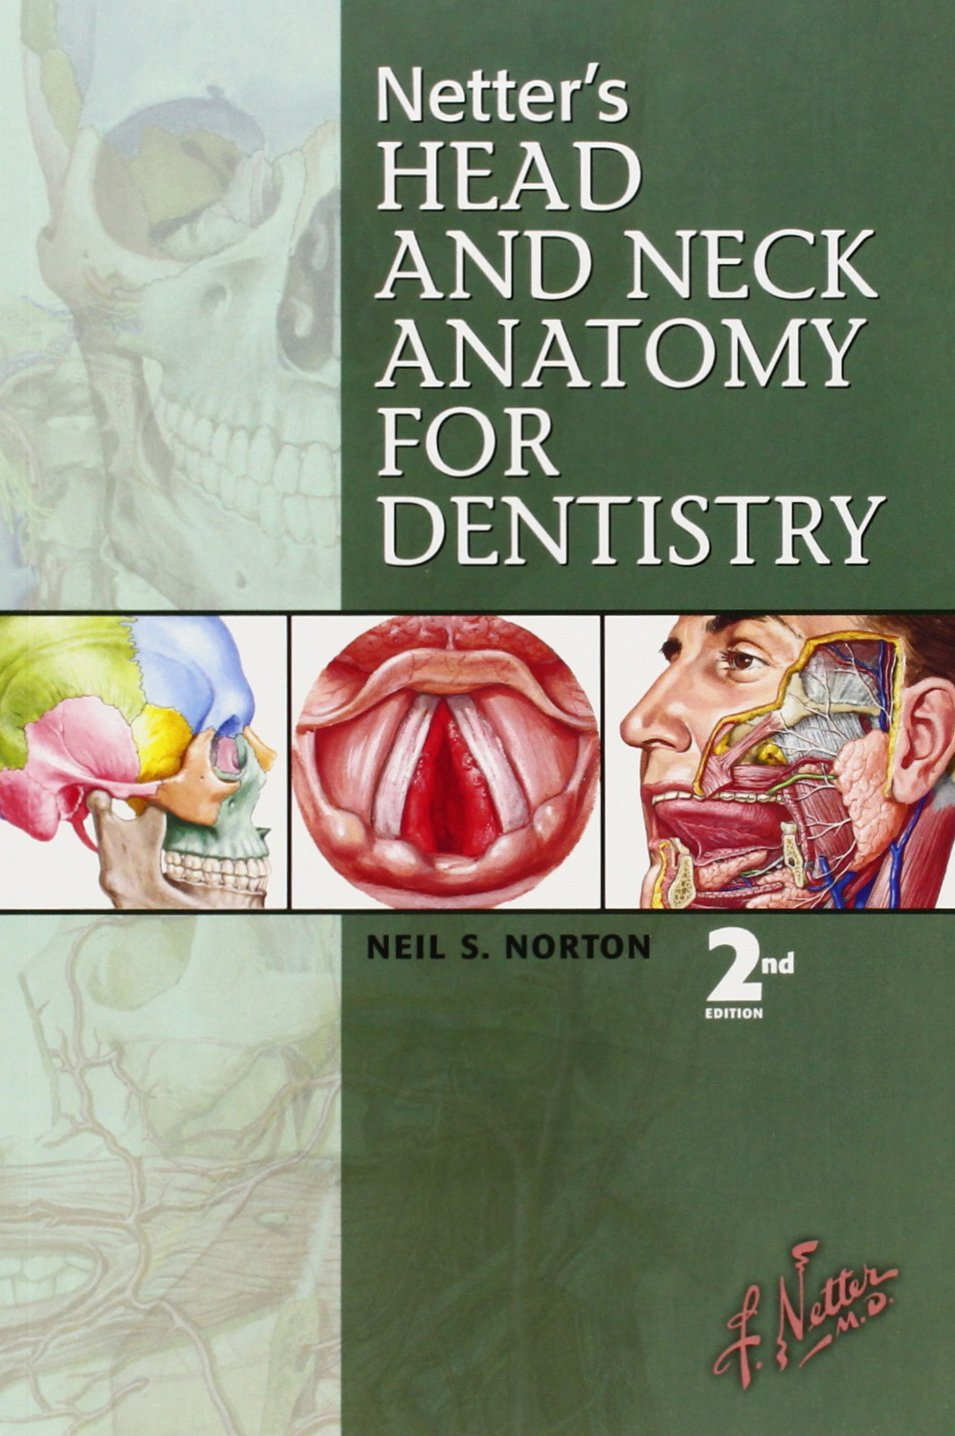 Netters Head And Neck Anatomy For Dentistry Amazon Neil S